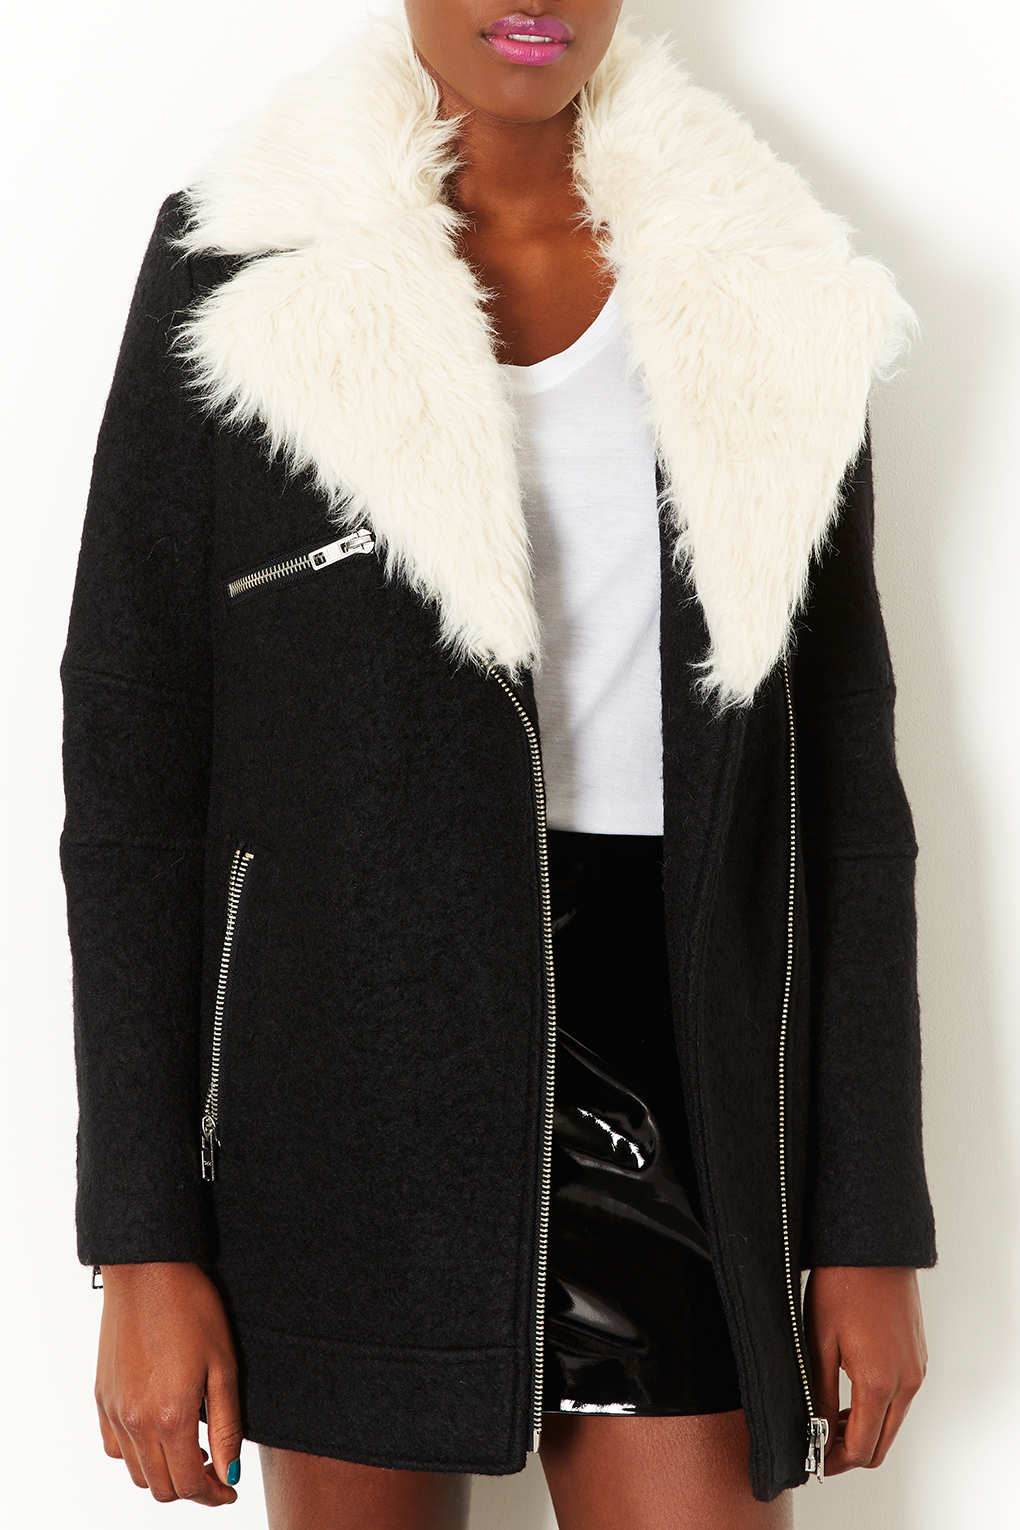 FREE Shipment to UK, USA & Canada. Jacket price starting from $, Mens Leather Biker Jacket With Fur Collar has been double stitched for extra durability. The jacket is made by hand using the finest genuine leather which will last you a lifetime.